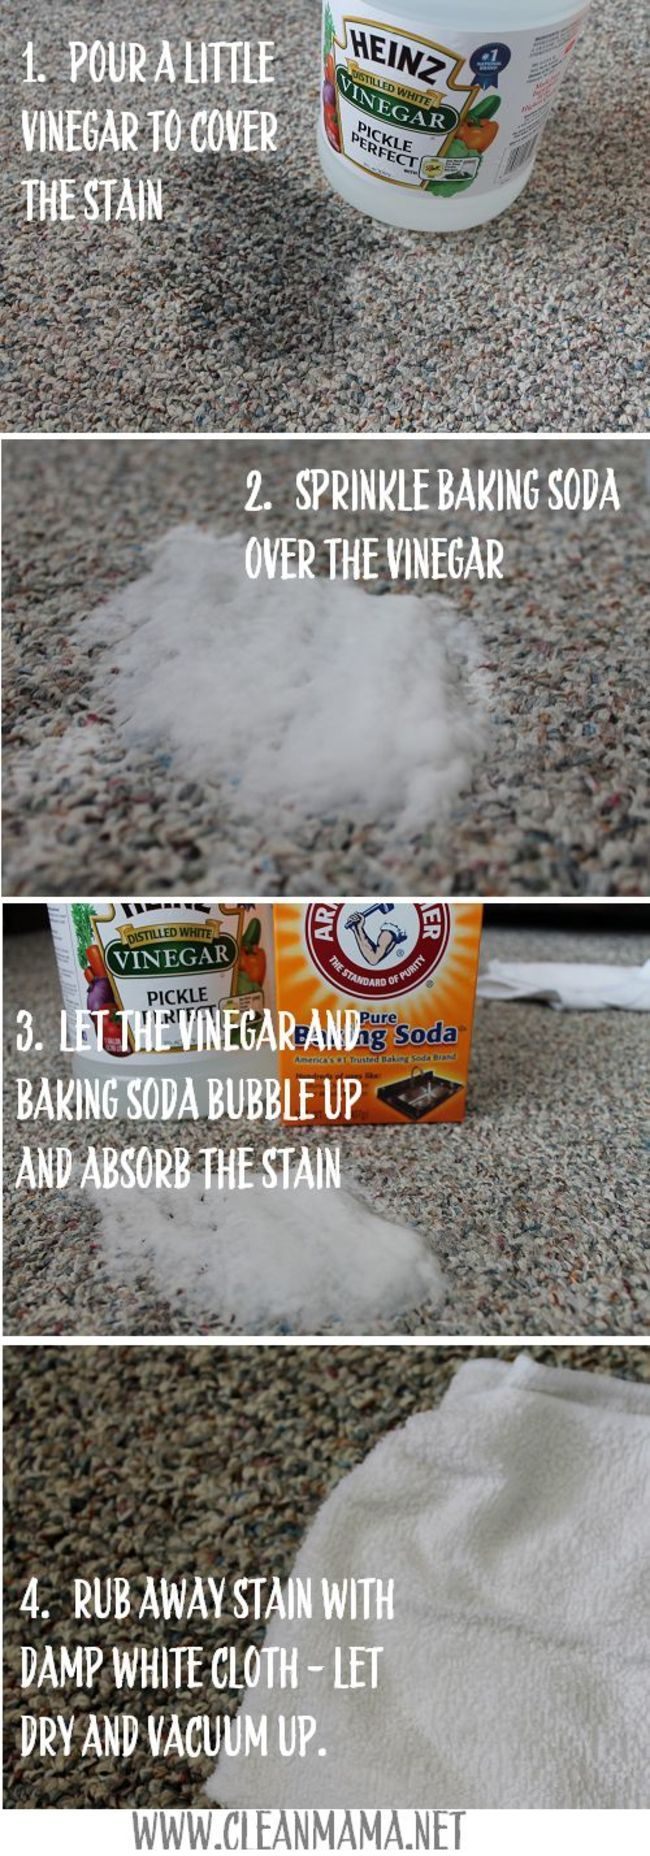 17. Vinergar and baking soda to the rescue!.GREAT CLEANING DAY TIPS HERE.